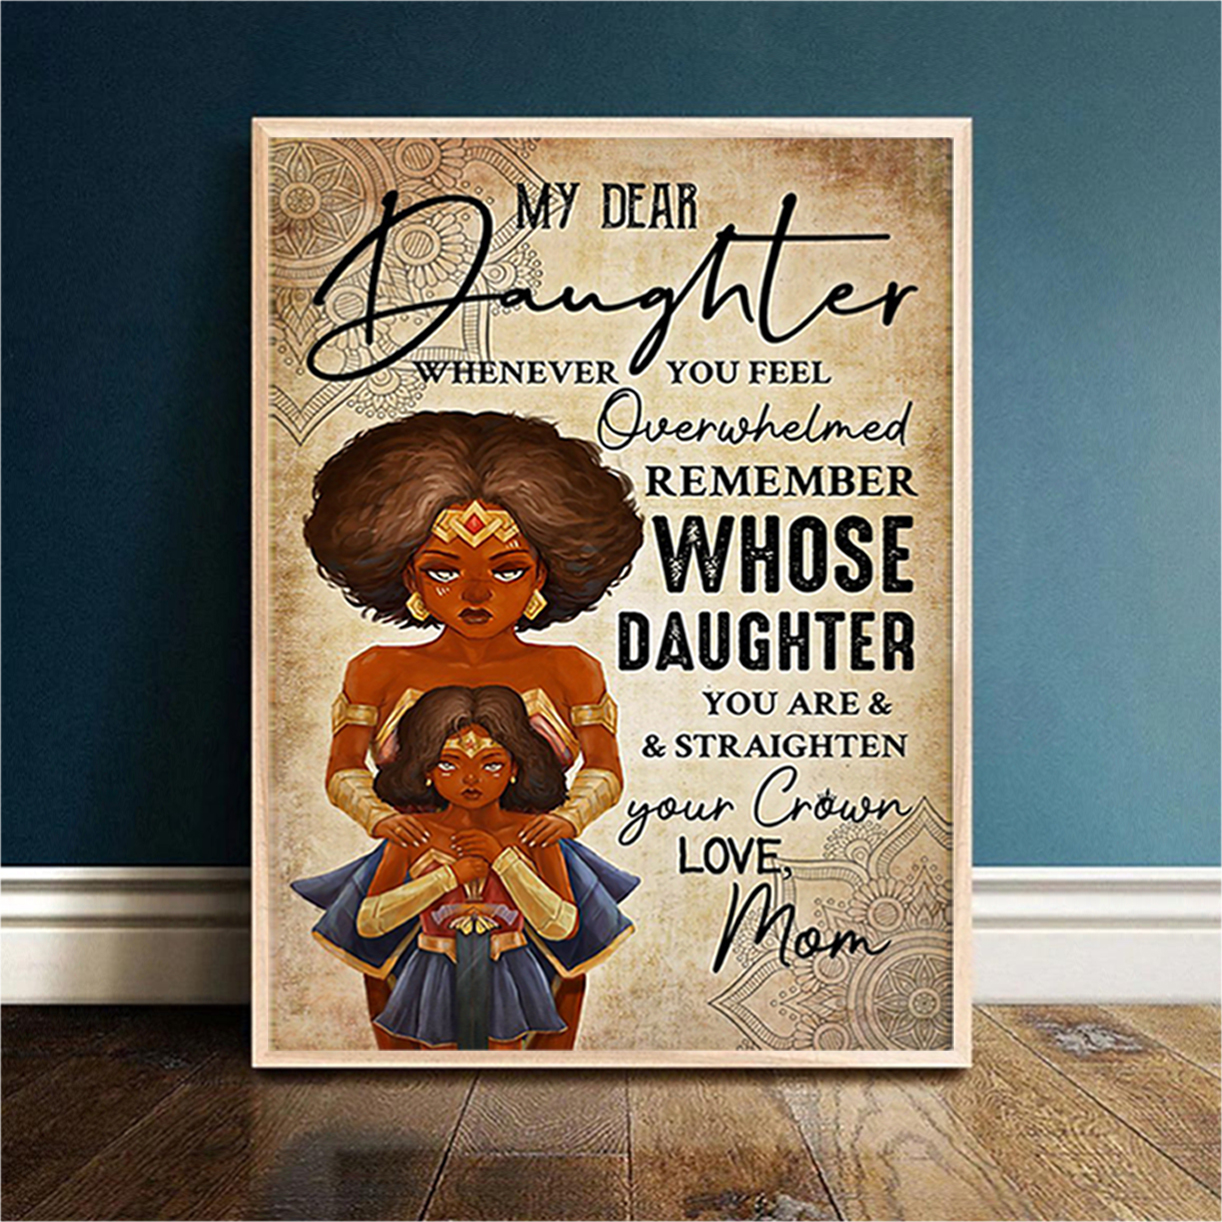 Black wonder woman my dear daughter mom poster A2